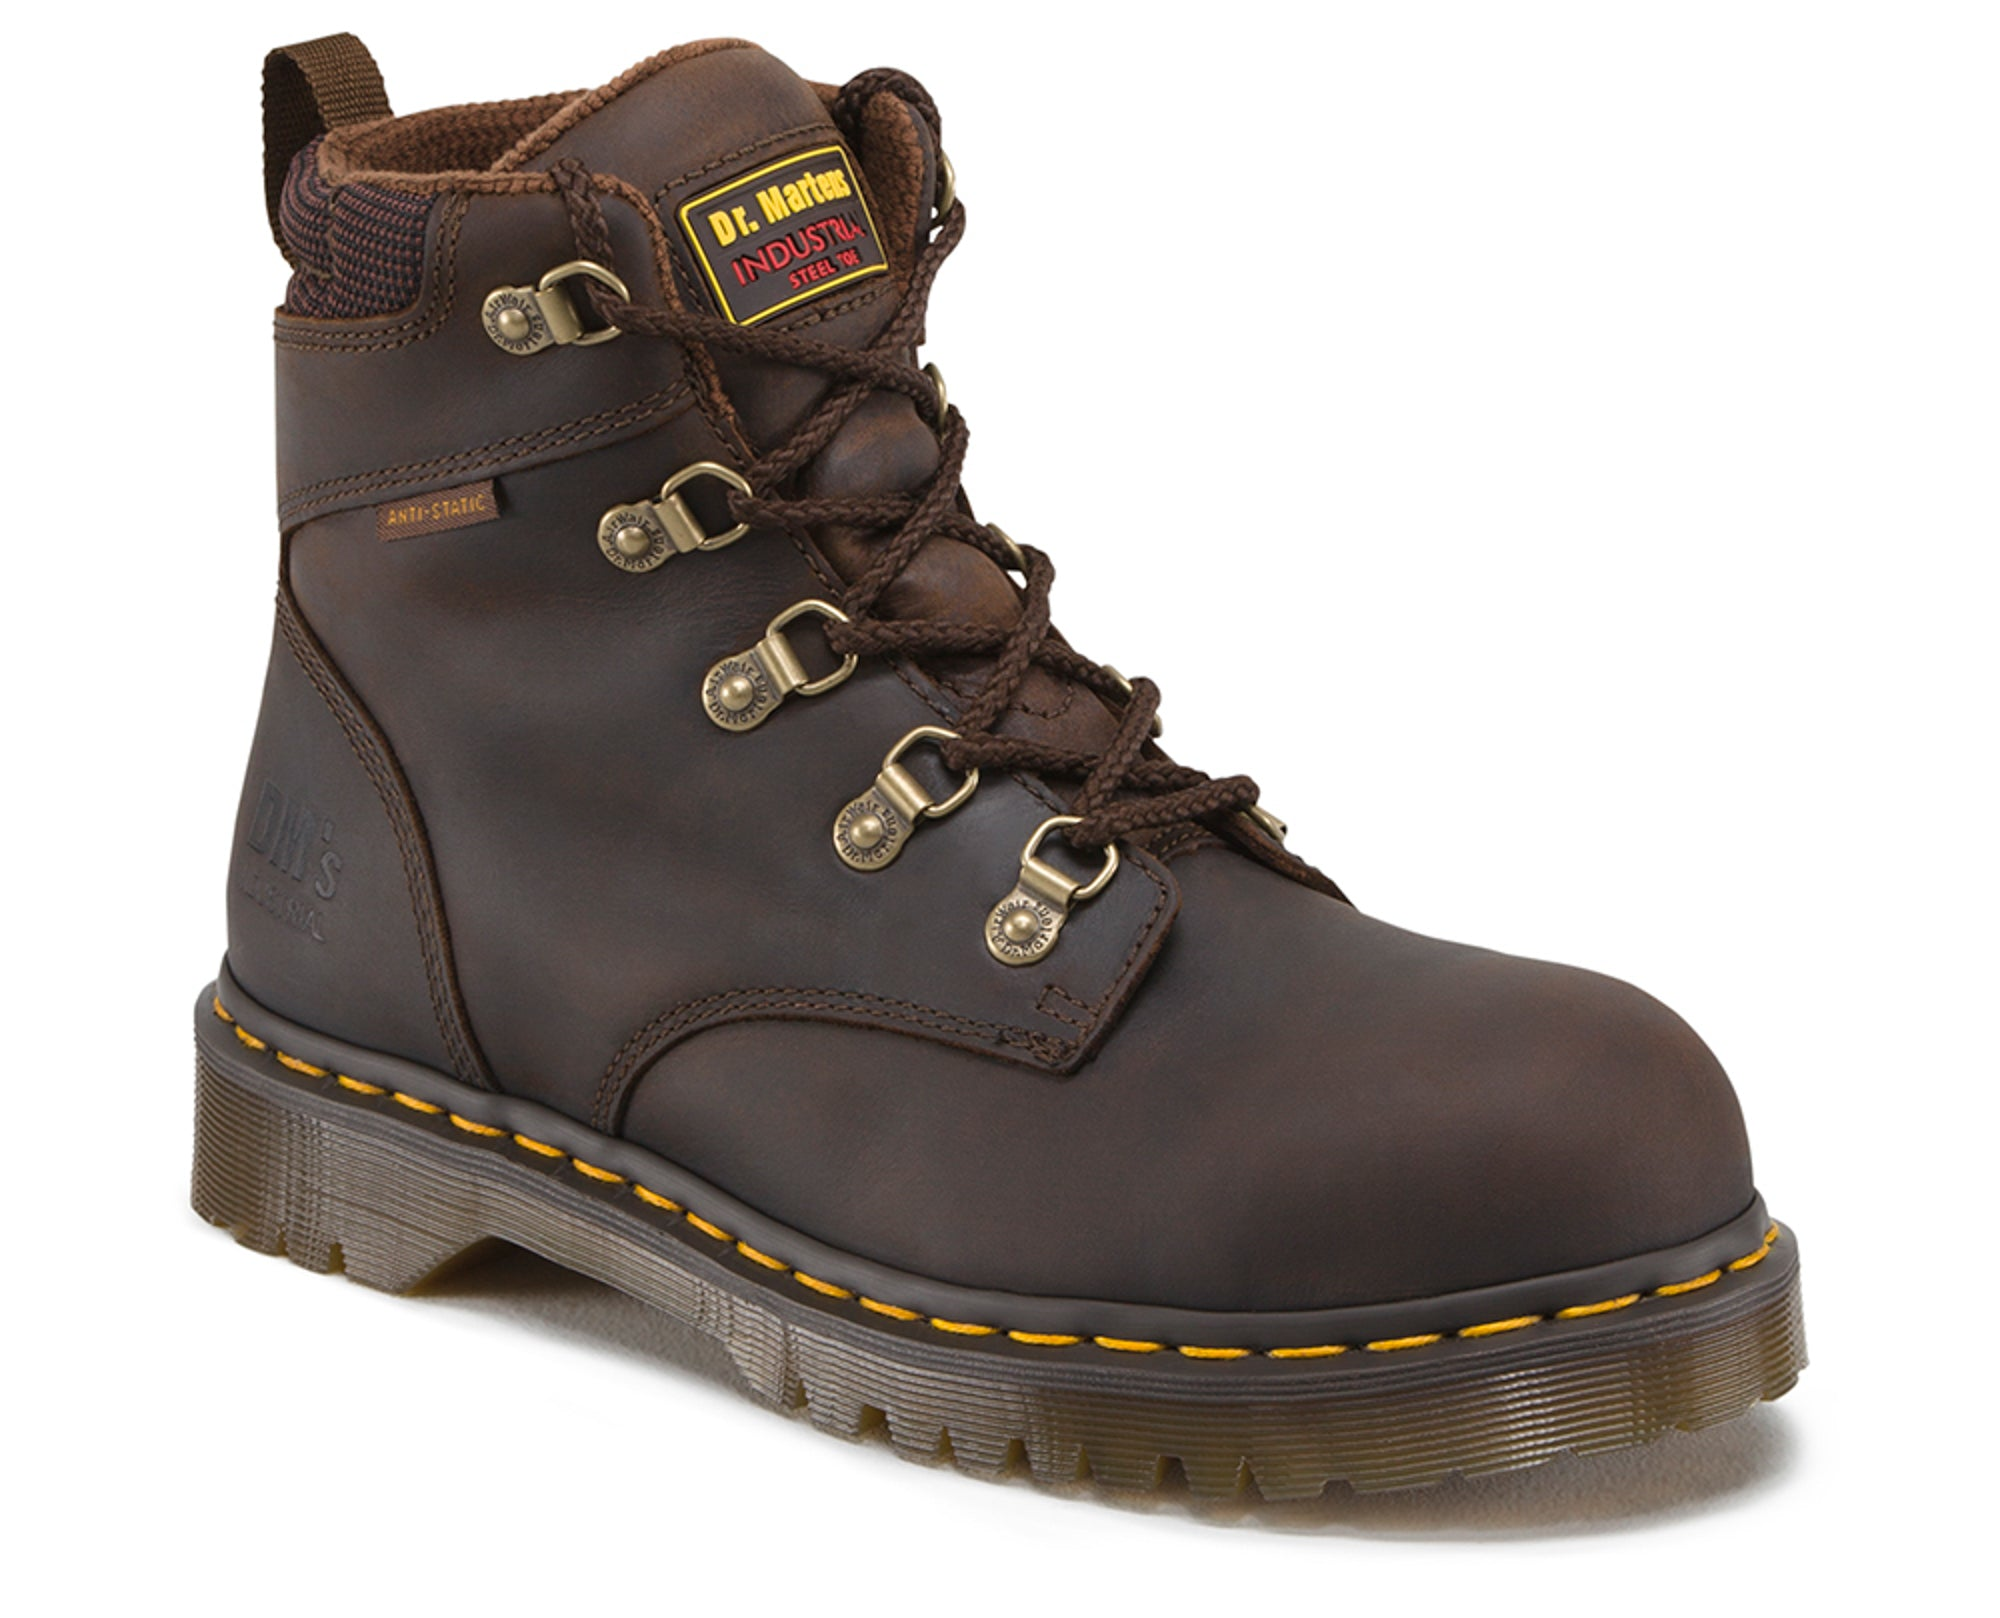 db9f34221e3 Dr Martens Gaucho Unisex Holkham Sd ST Volcano Leather Work Boots ...